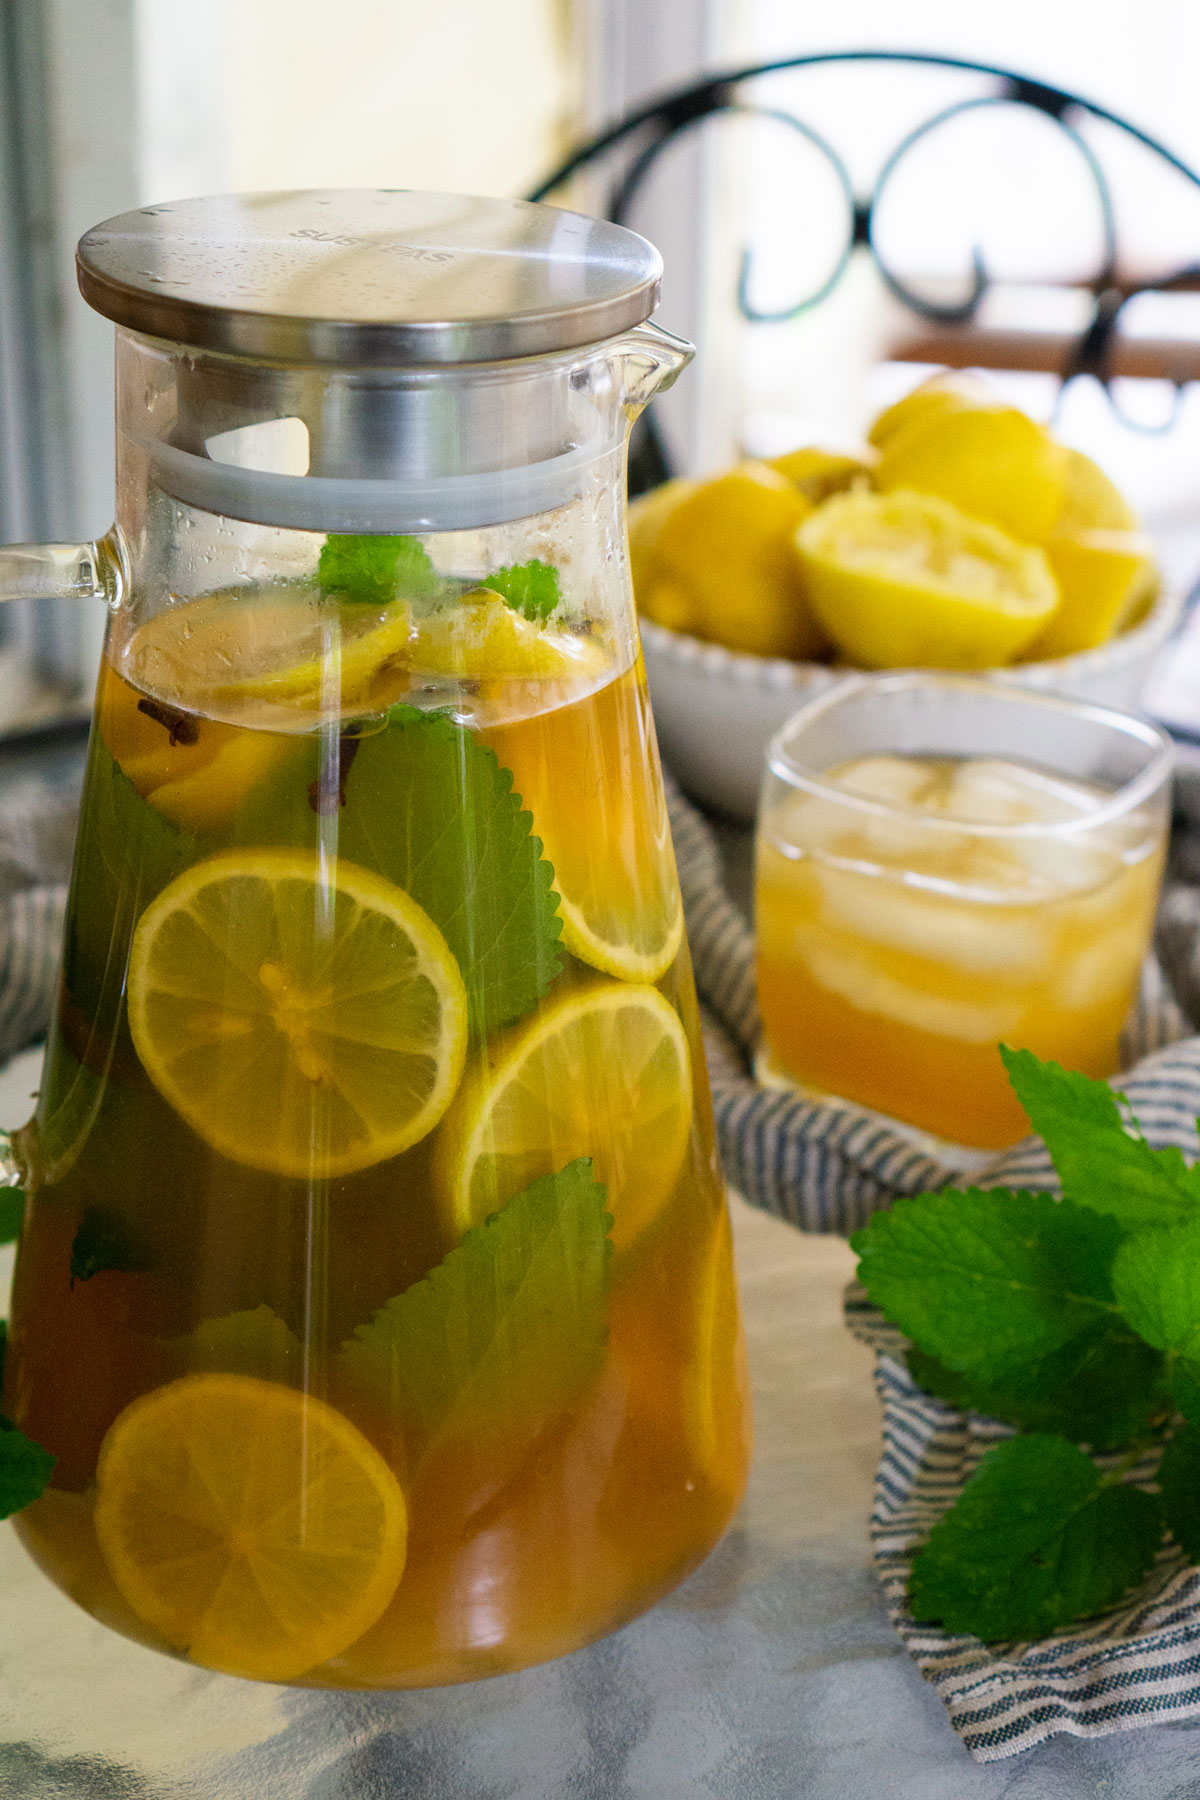 Pitcher of Arnold Palmer iced tea on table with glass and lemons in background